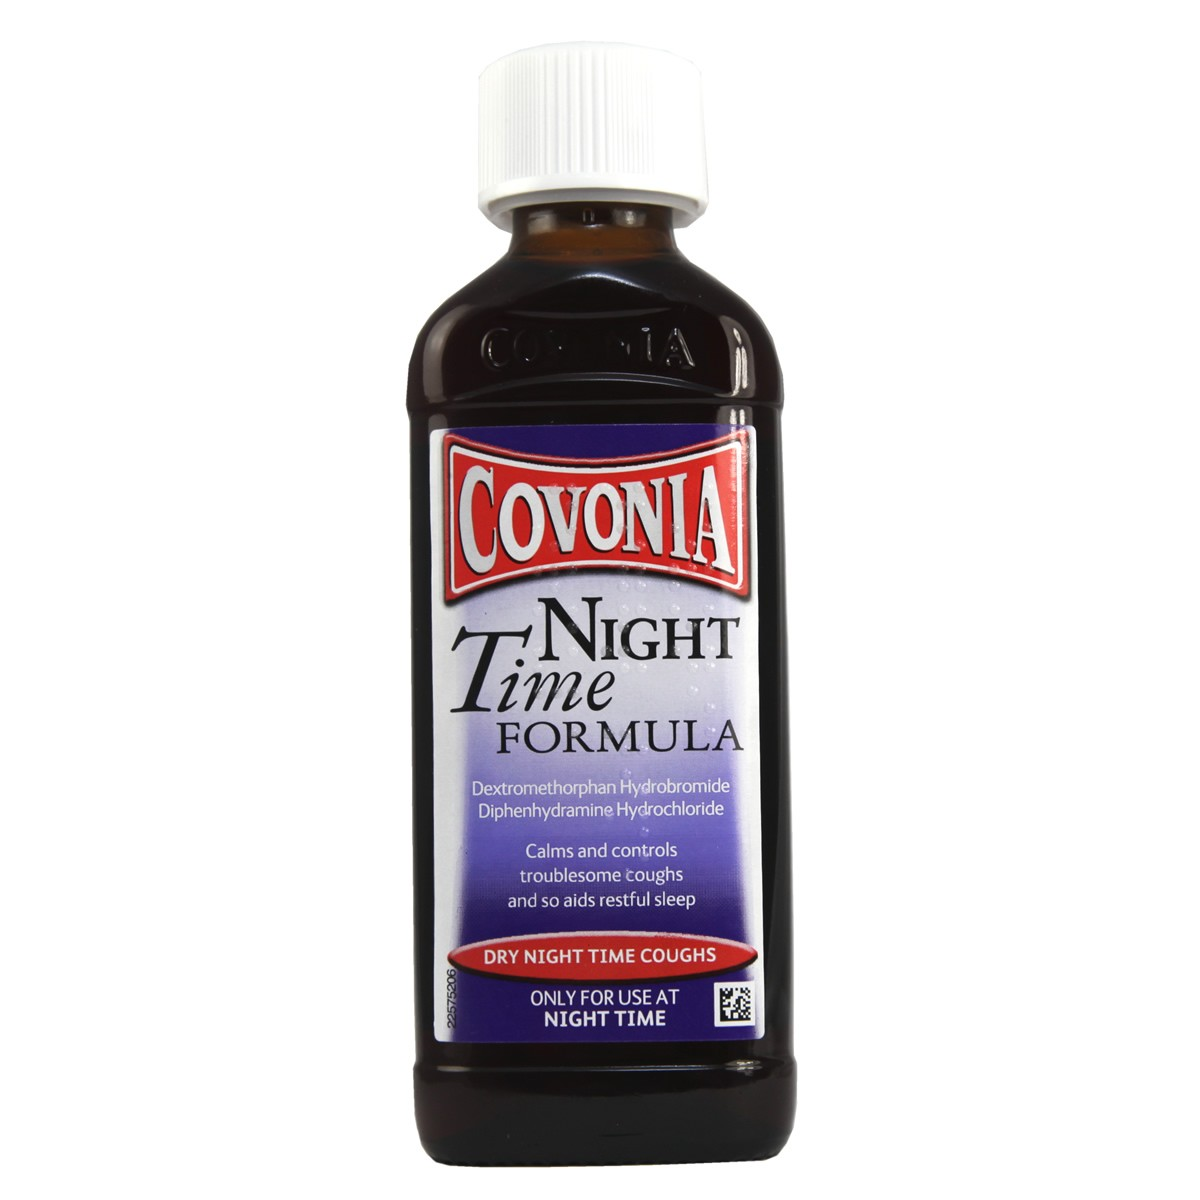 Covonia Night Time Formula